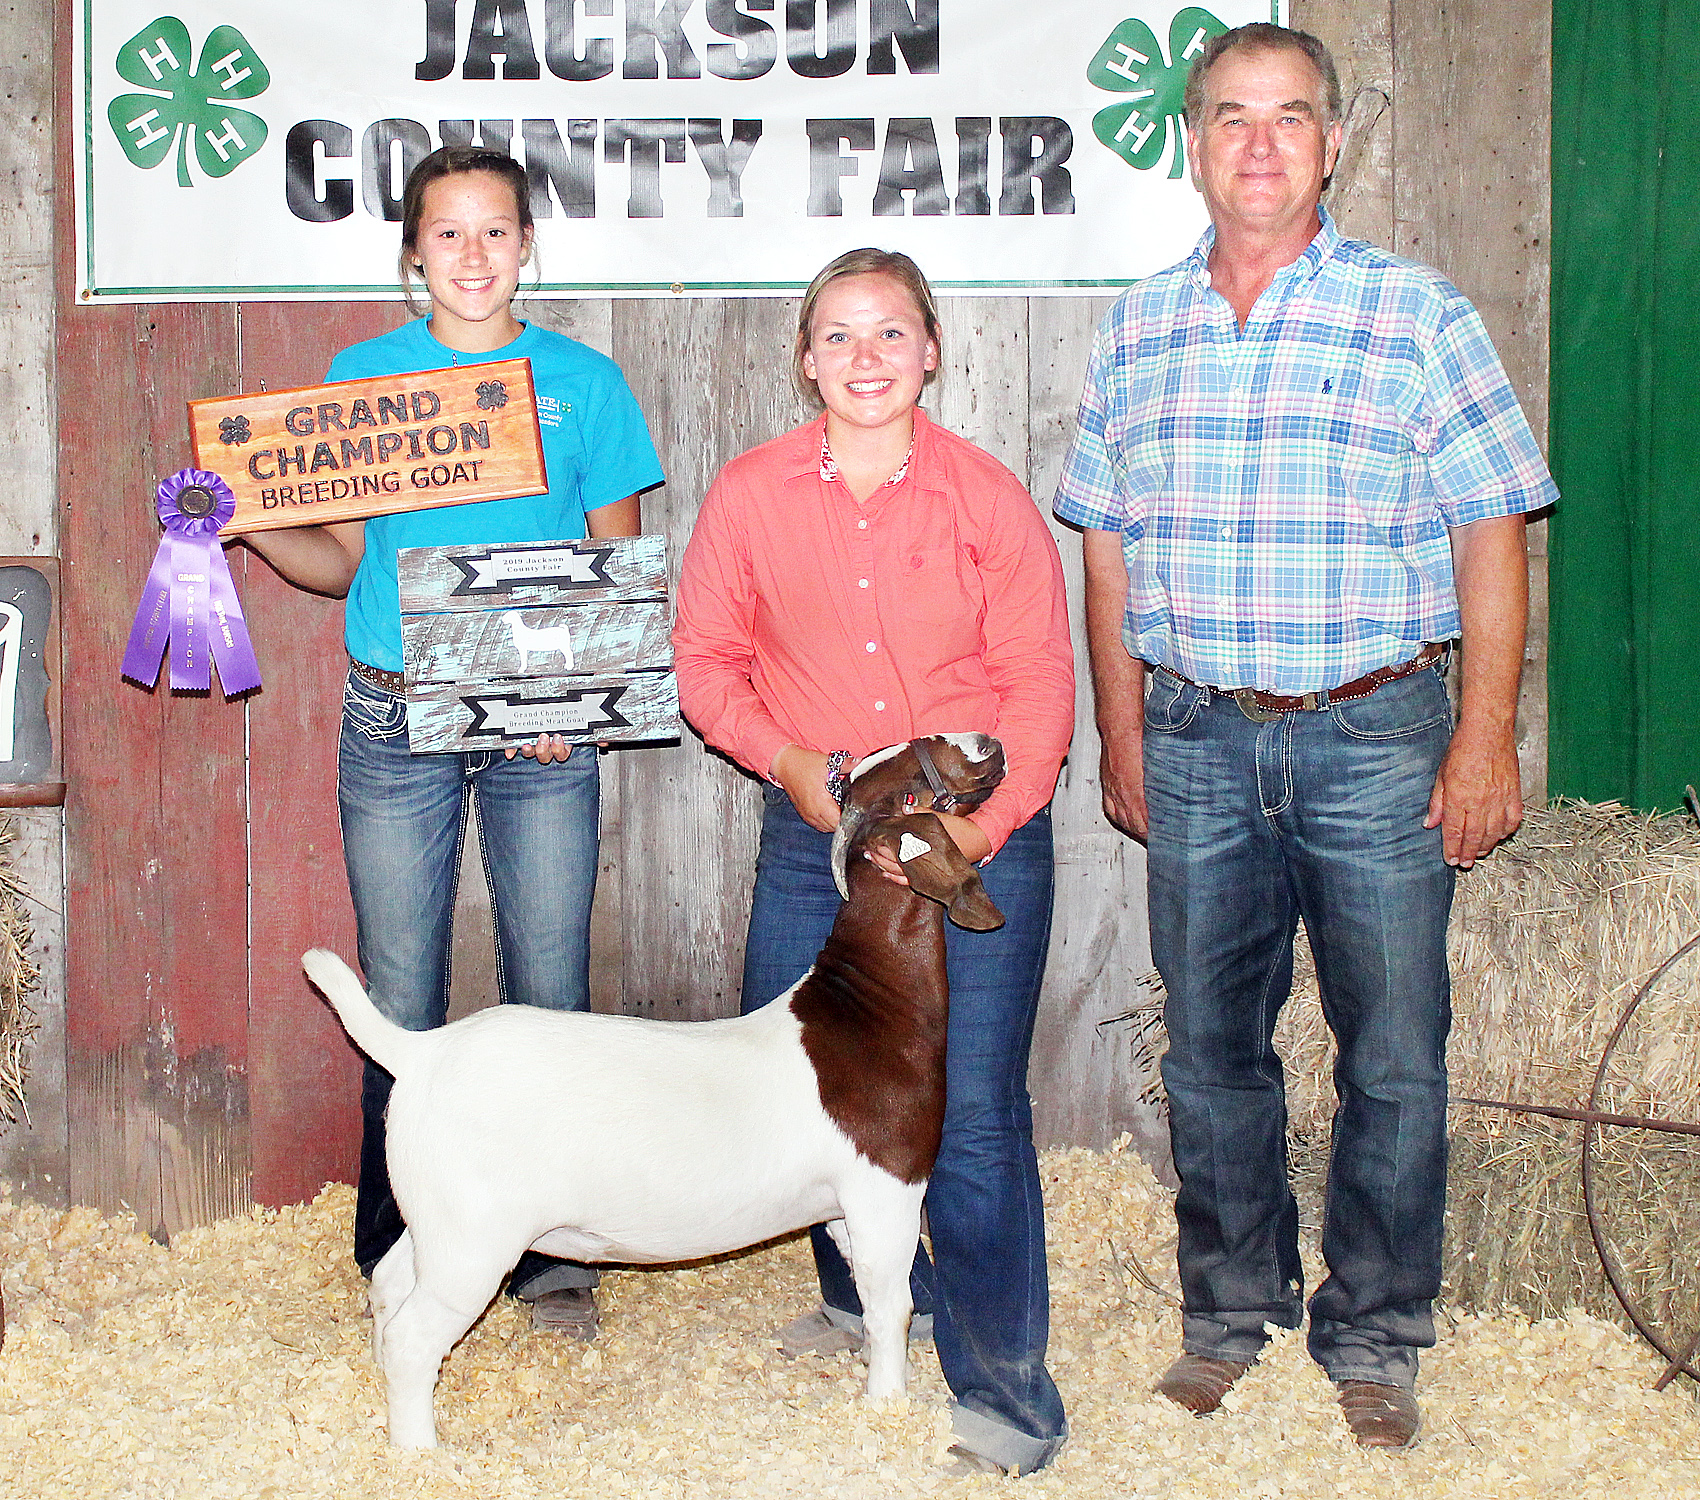 Jerilyn Nelson - Grand Champion Breeding Goat